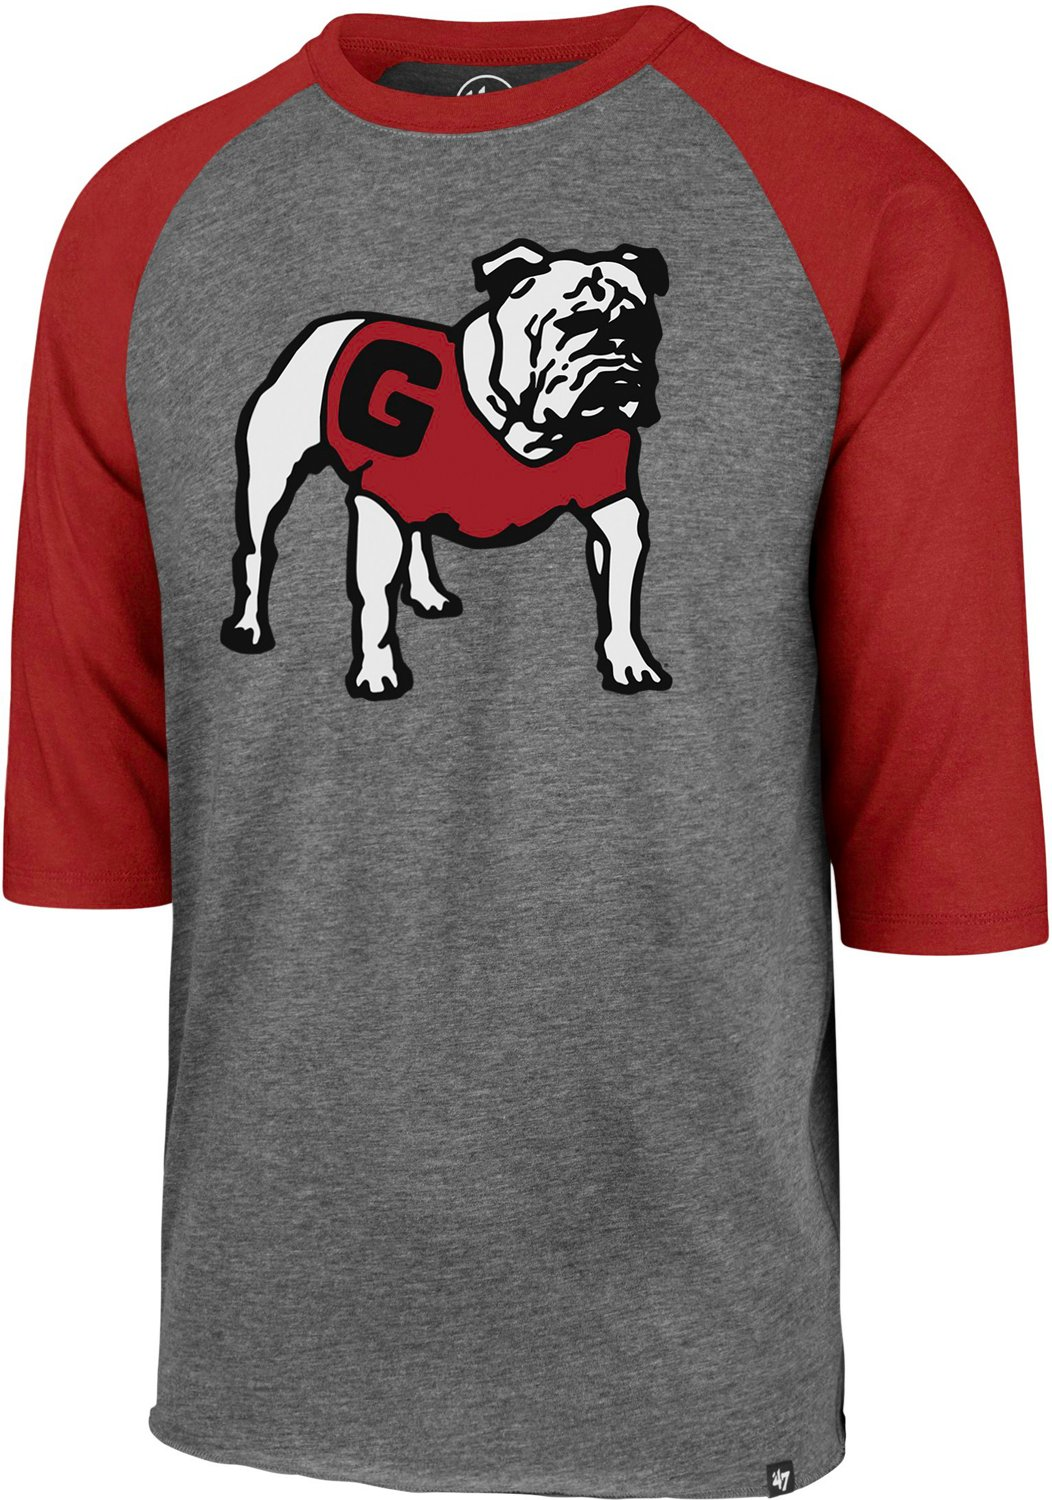 cbcd46838fcc '47 University of Georgia Men's Vintage Imprint Club Raglan Long Sleeve T- shirt | Academy